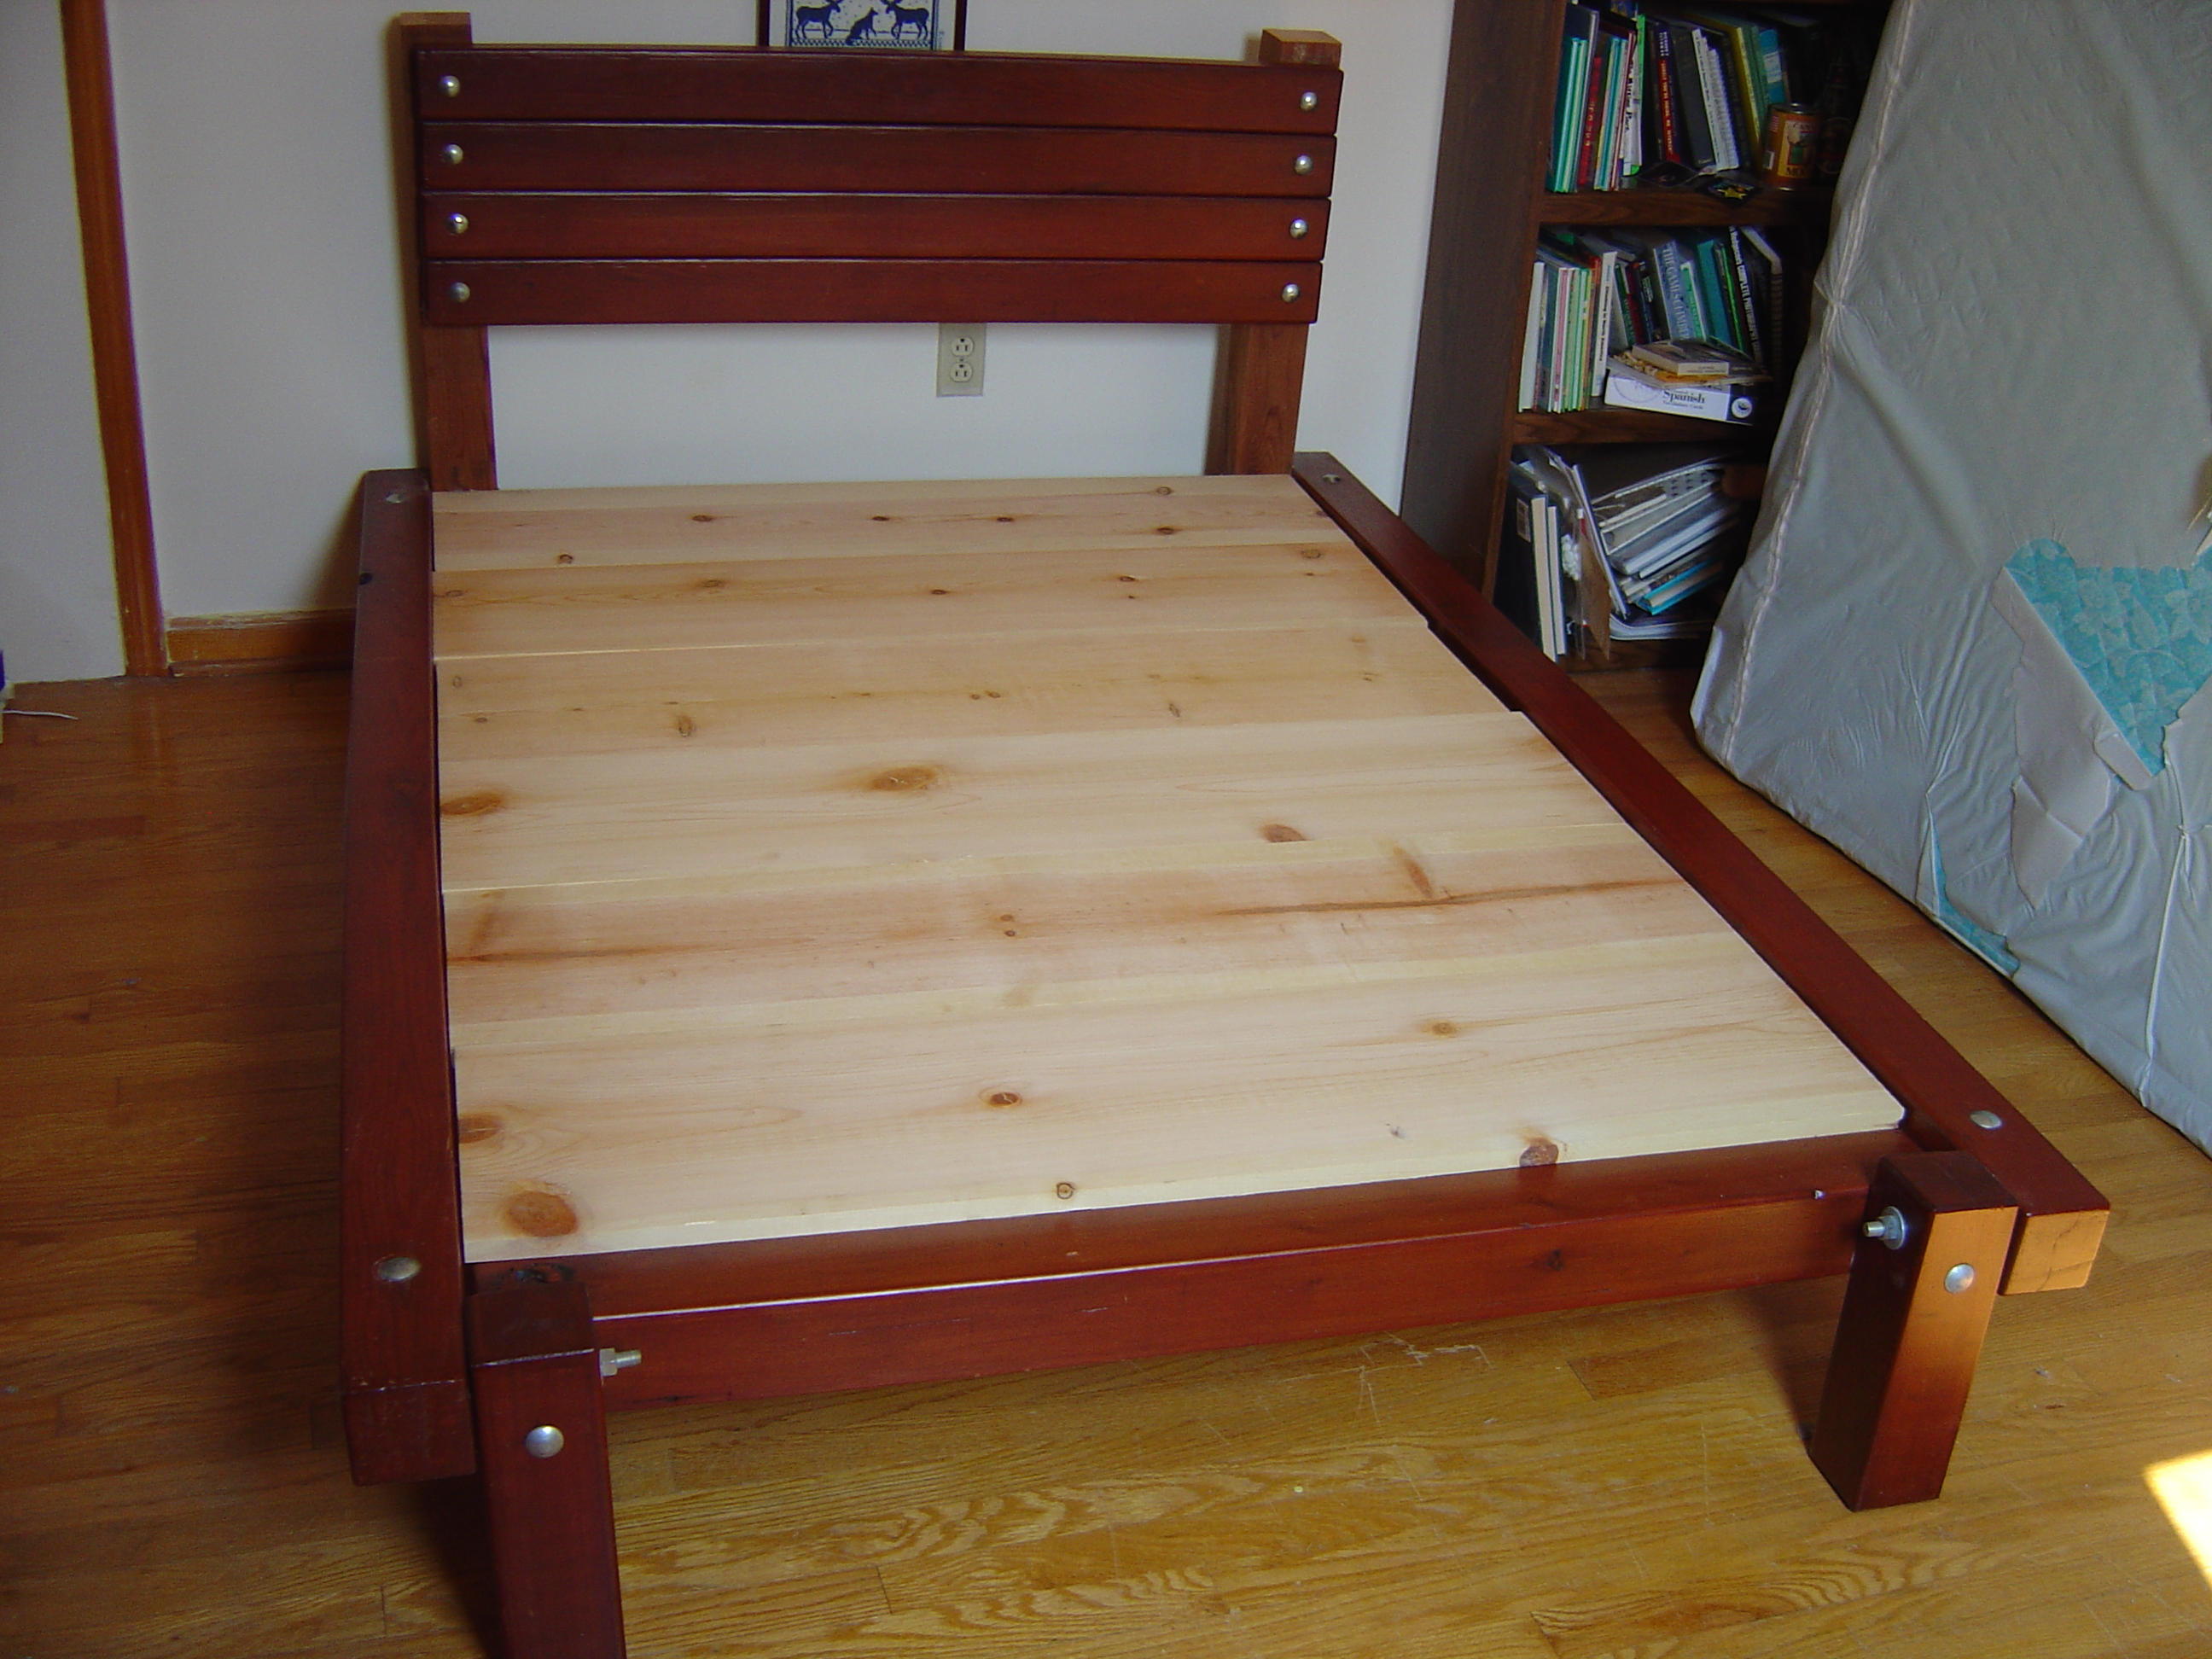 How To Build A Platform Bed With Stairs Platform bed - i designed and